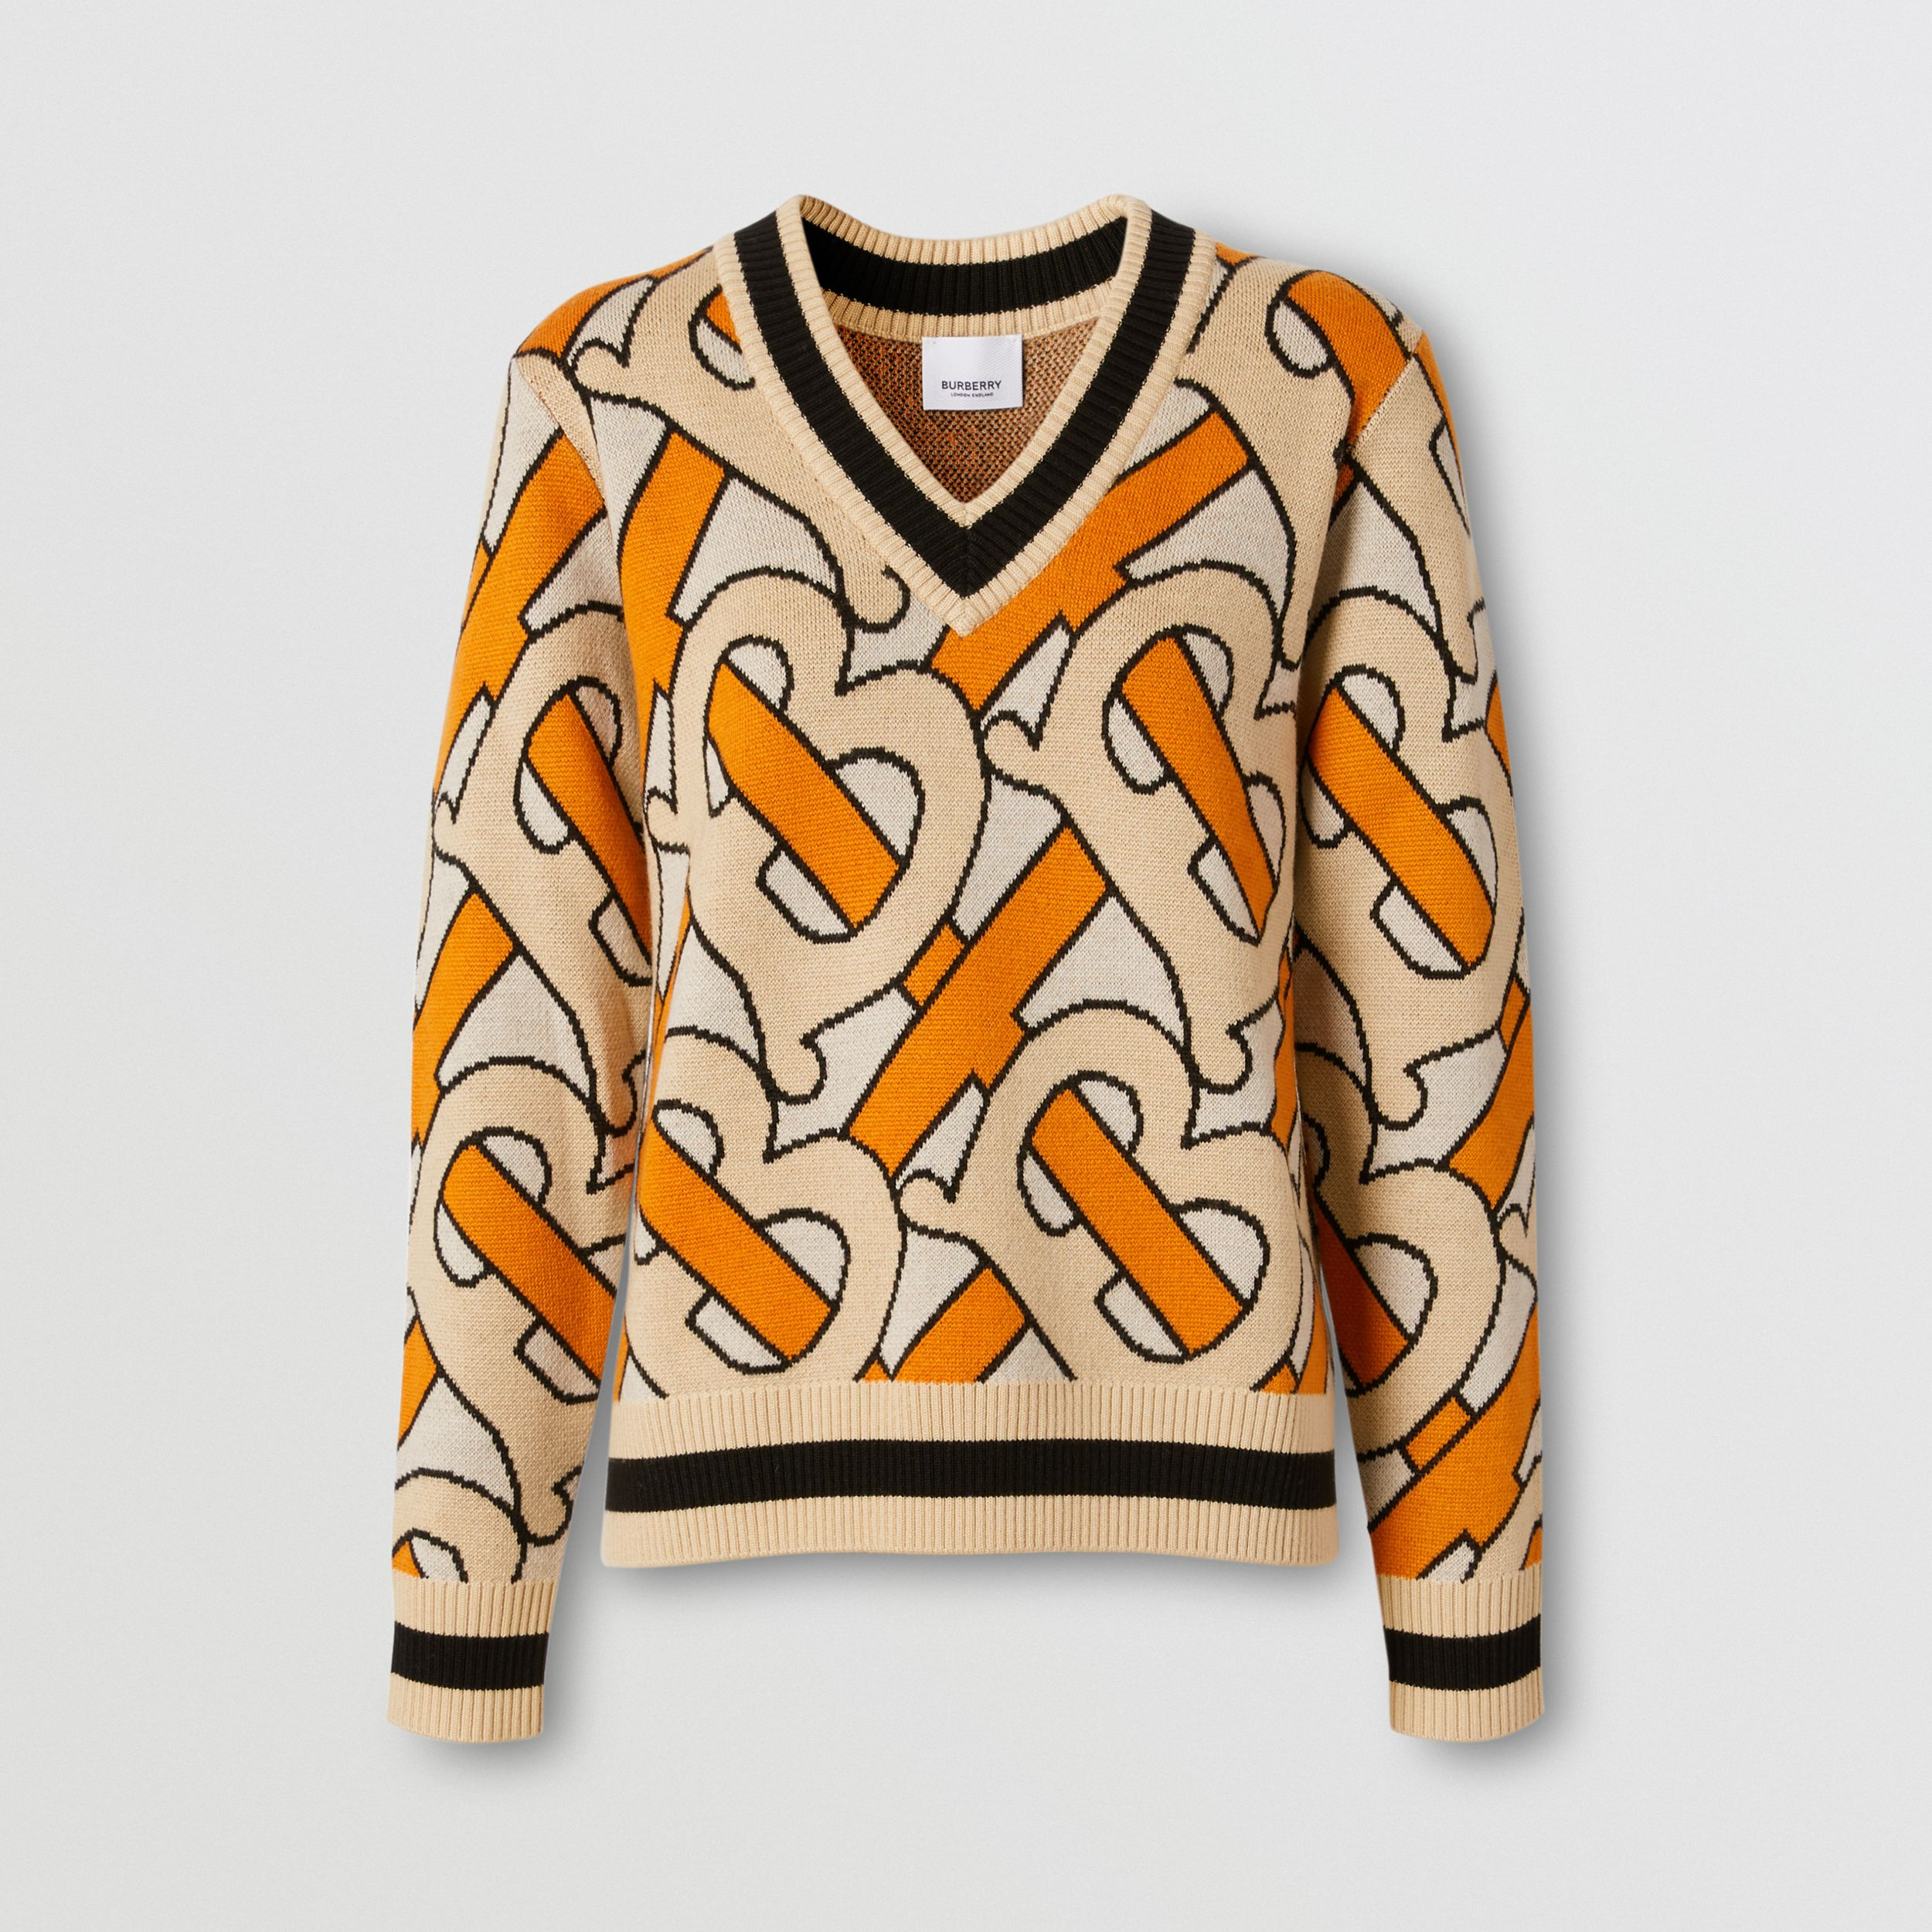 Monogram Intarsia Wool V-neck Sweater in Bright Orange - Women | Burberry - 4